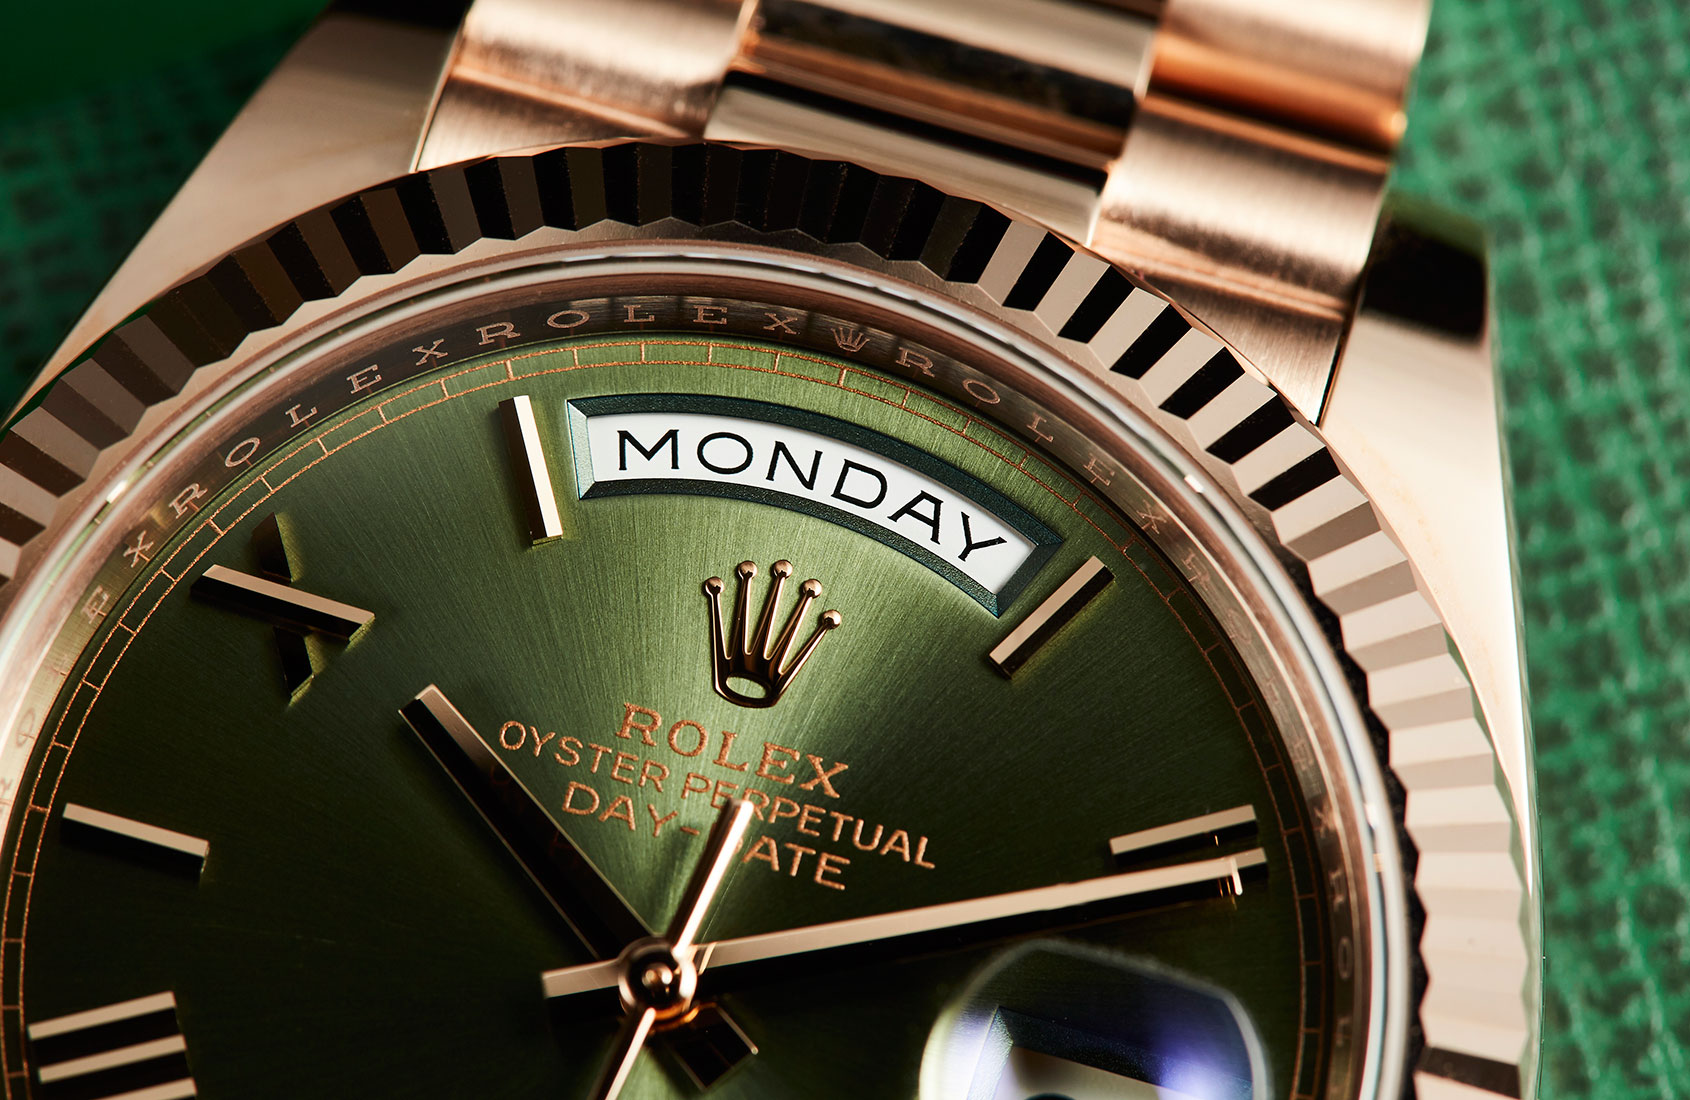 Rolex Oyster Perpetual Day-Date 40 olive green dial (ref. 228235)